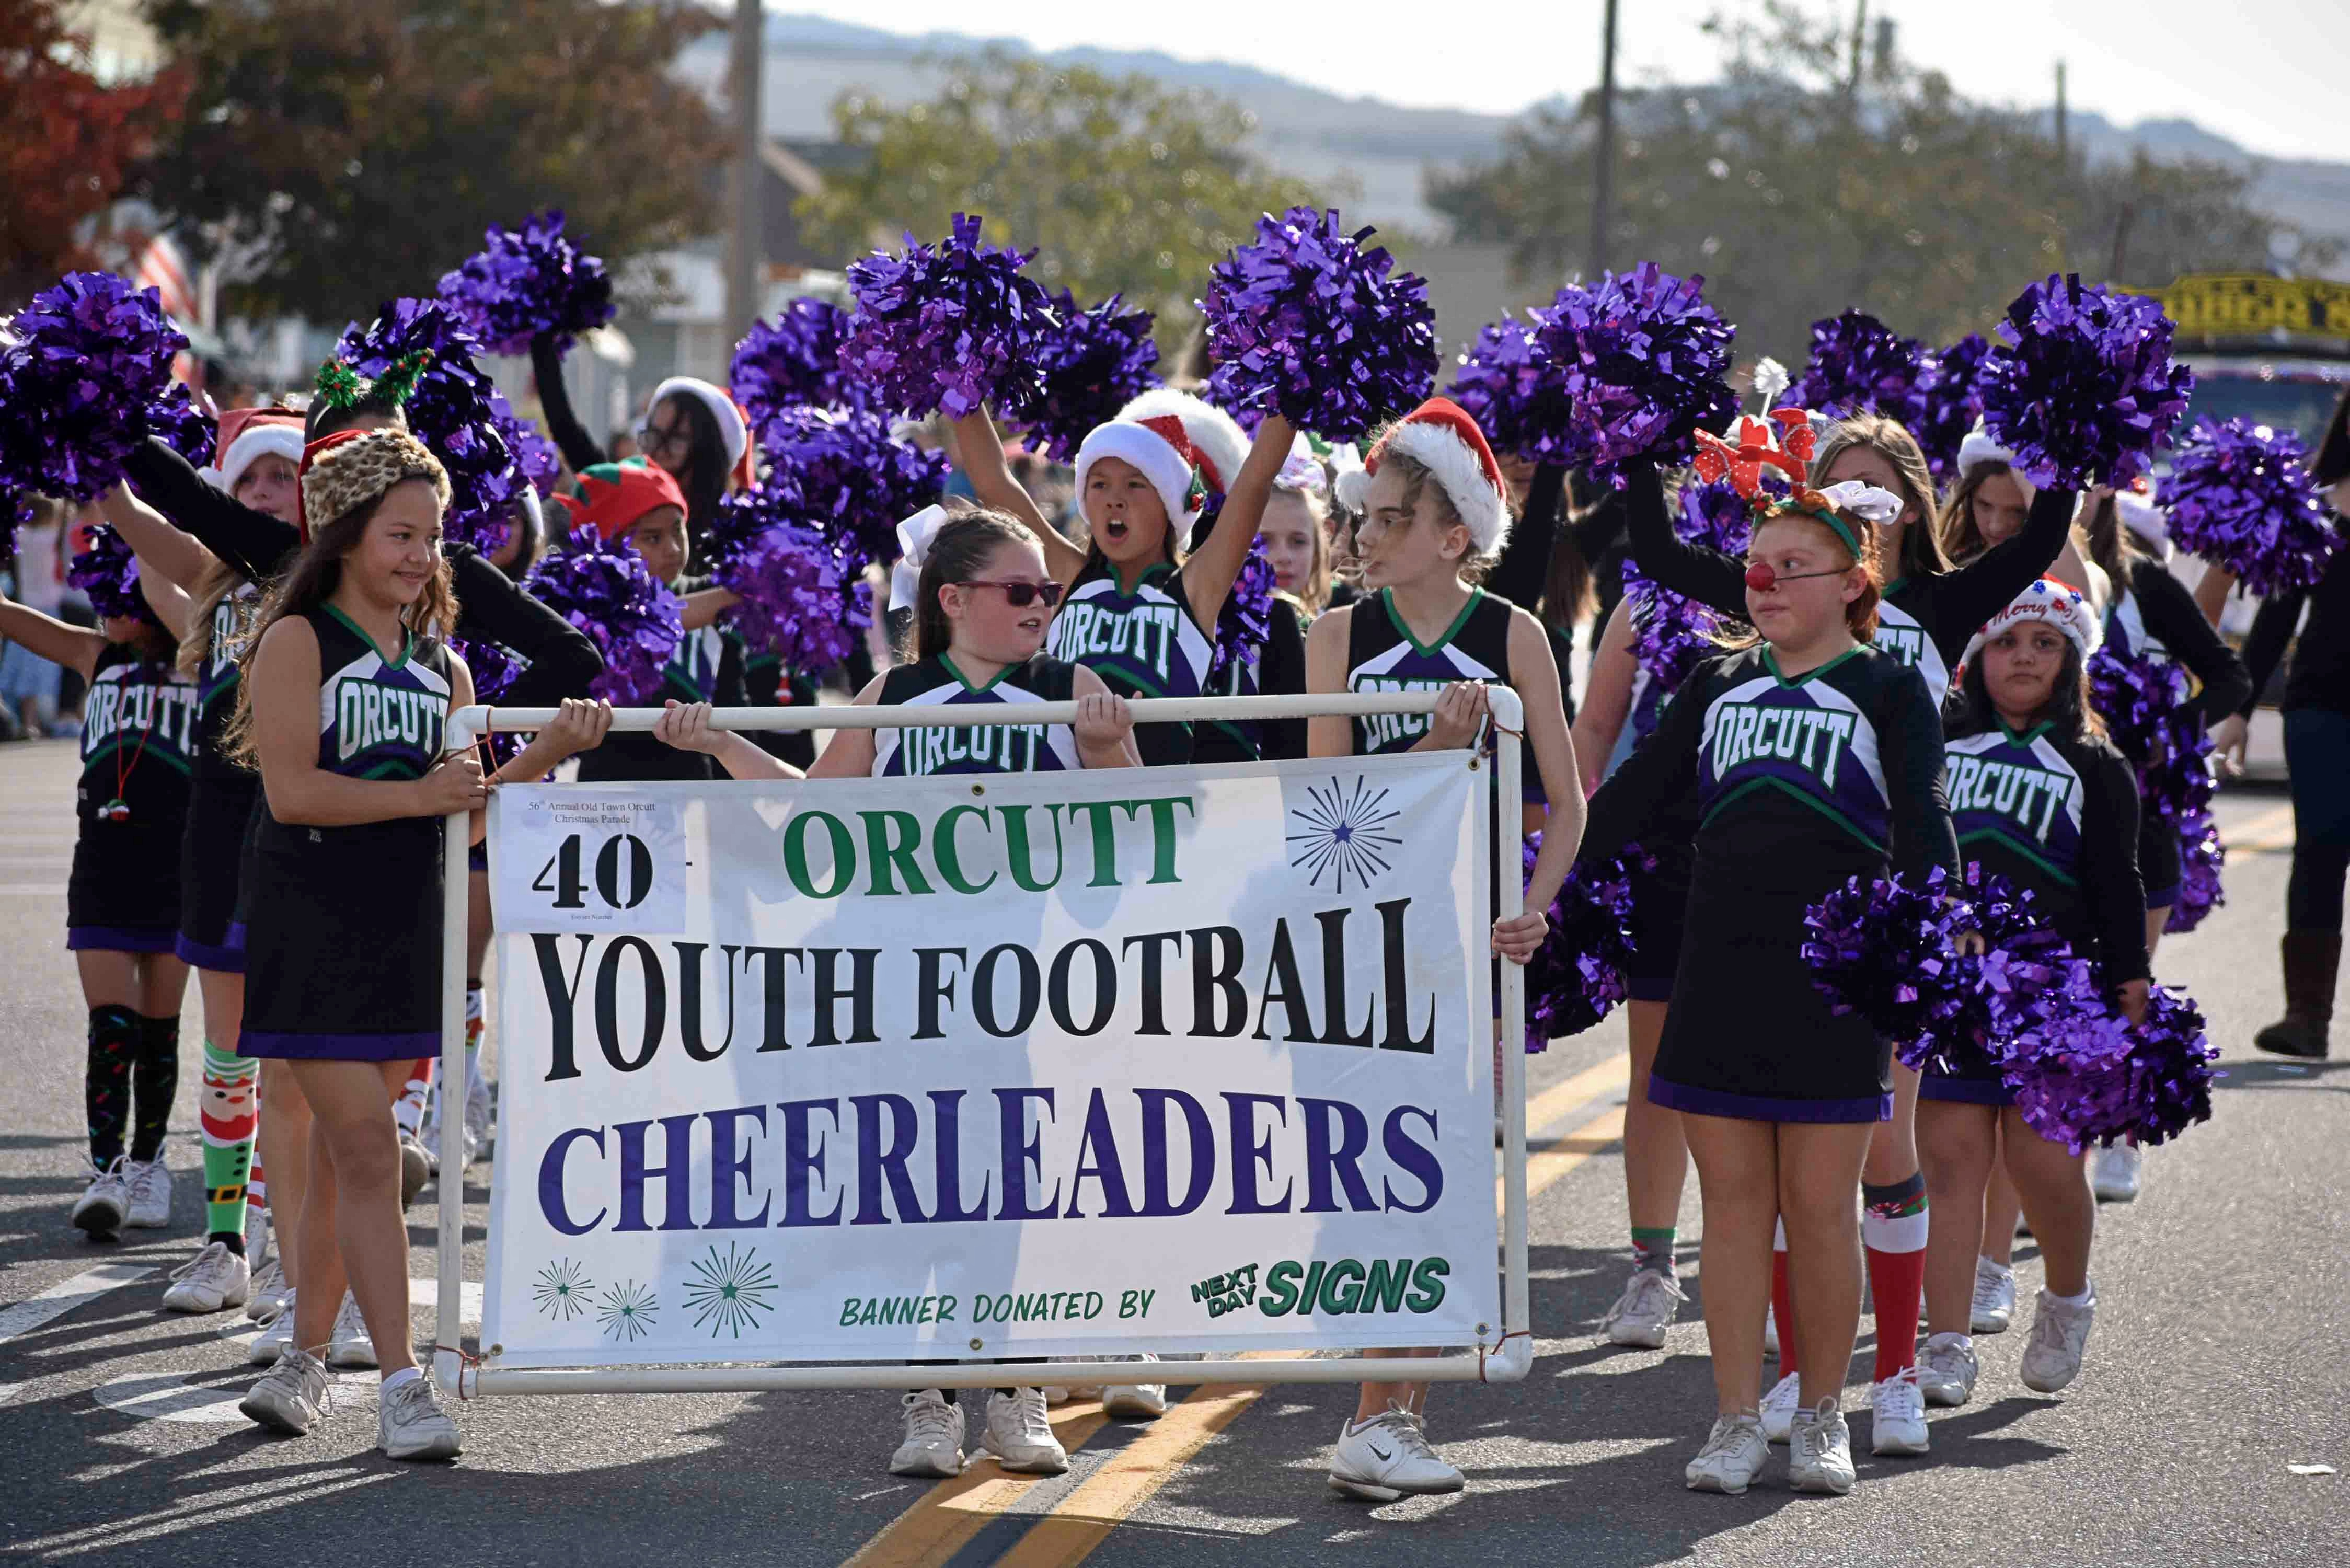 Orcutt Youth Football Cheerleaders display their spirit in the Old Orcutt Christmas Parade.